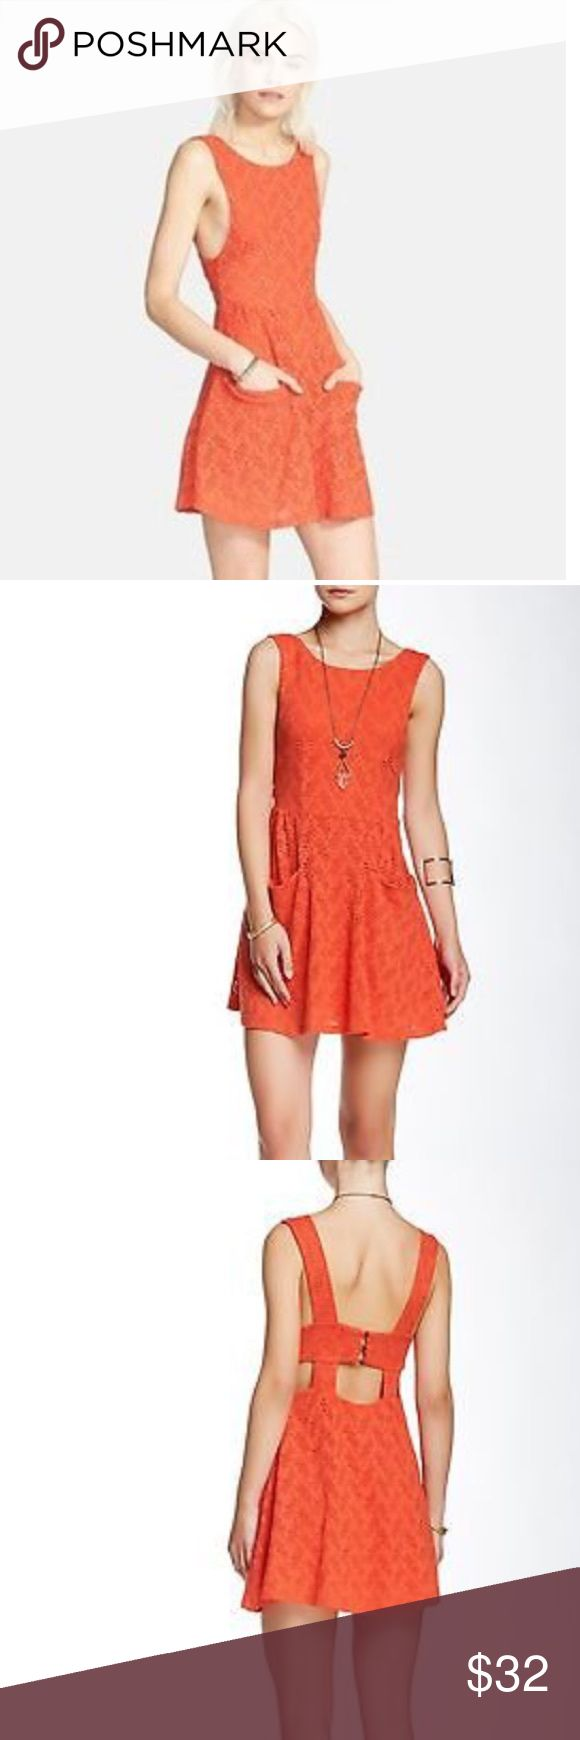 Free People Orange Poppy Dress Worn Once for a spring stroll. So comfy, soft, size two and holds form but us lots of stretch if needed. Pockets for hands, finds, keys, and cuteness. I adore it but just feel my shoulders are a bit broad for the cut so I never wear it, but haven't wanted to sell it. Perfect condition. Free People Dresses Mini